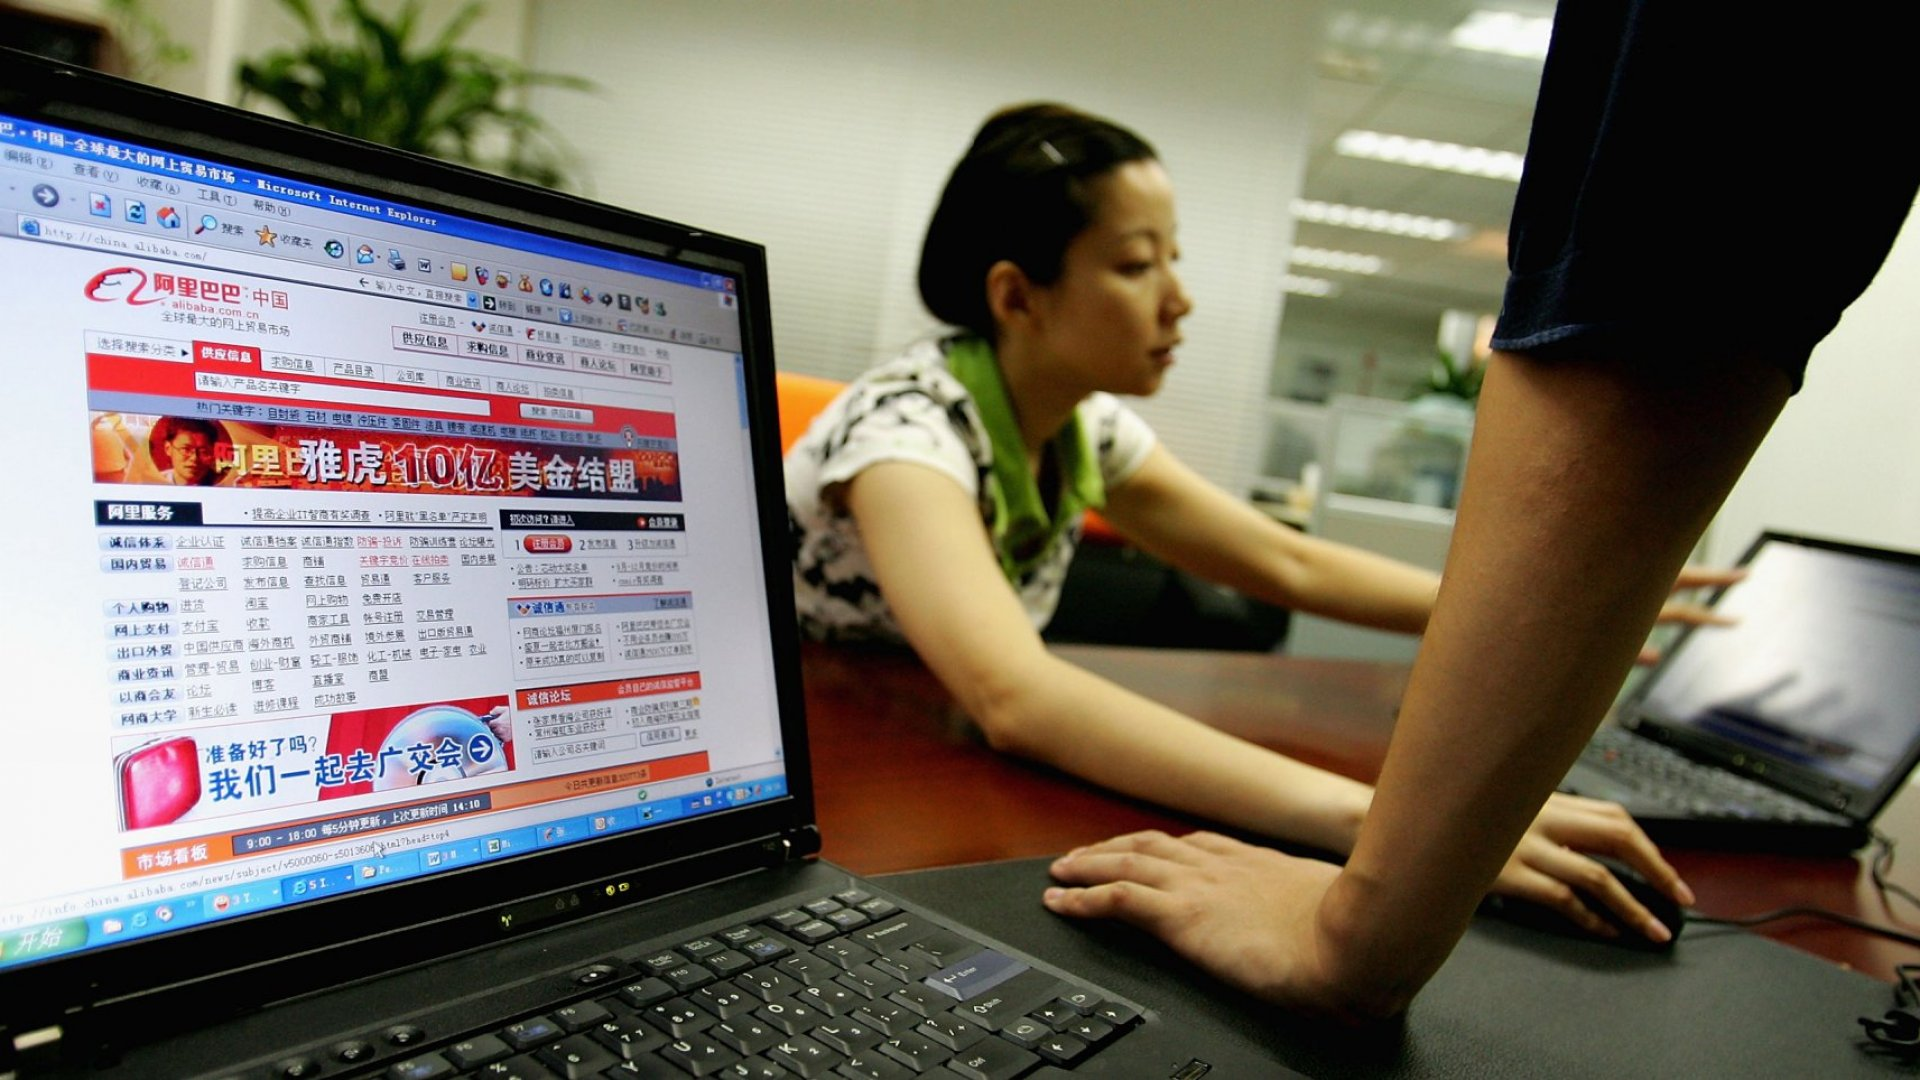 How Alibaba Plans to Stamp Out Bogus Merchandise